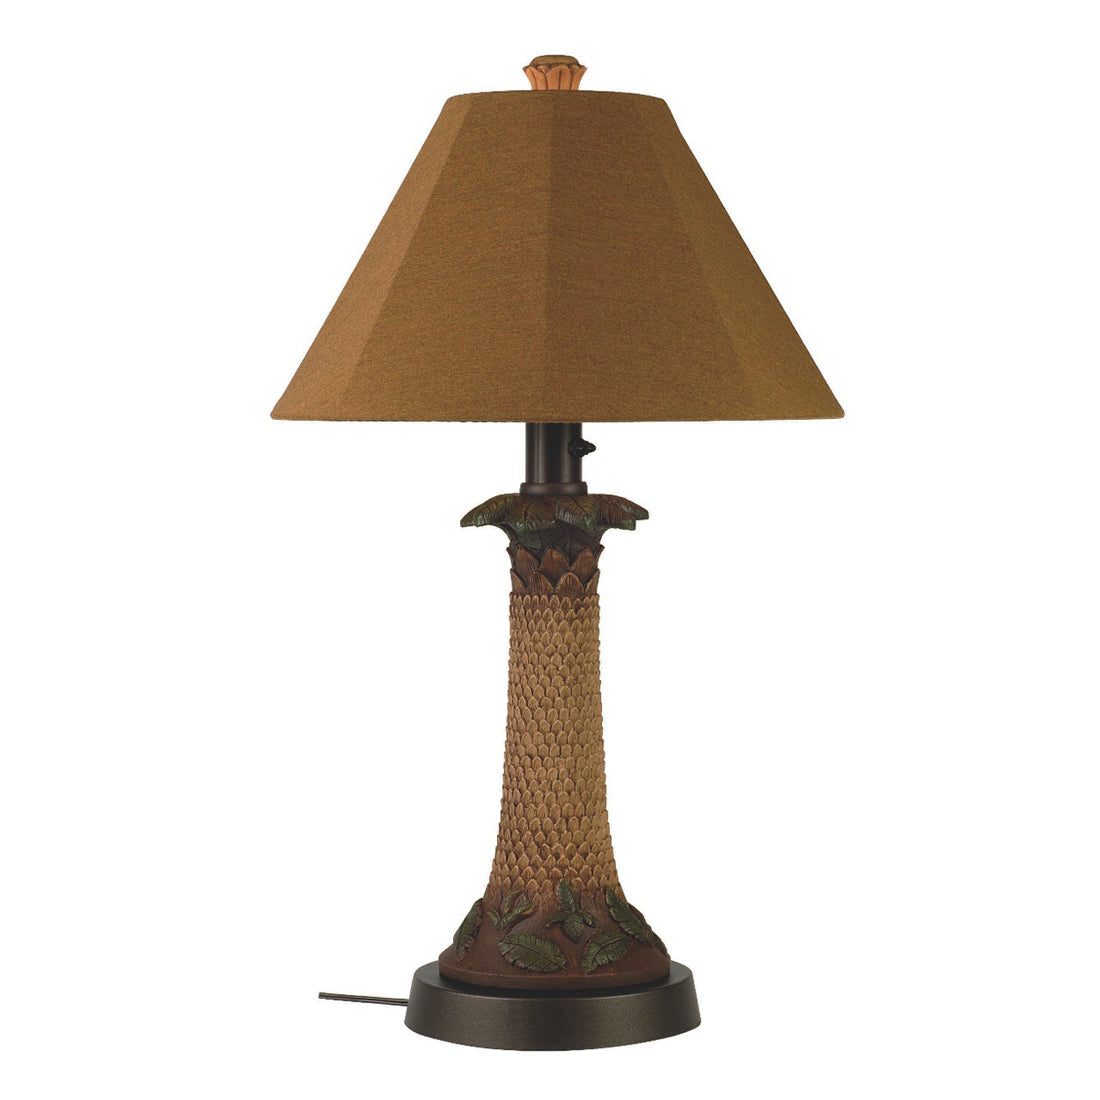 Palm Outdoor Table Lamp 36957 with Teak Sunbrella Shade